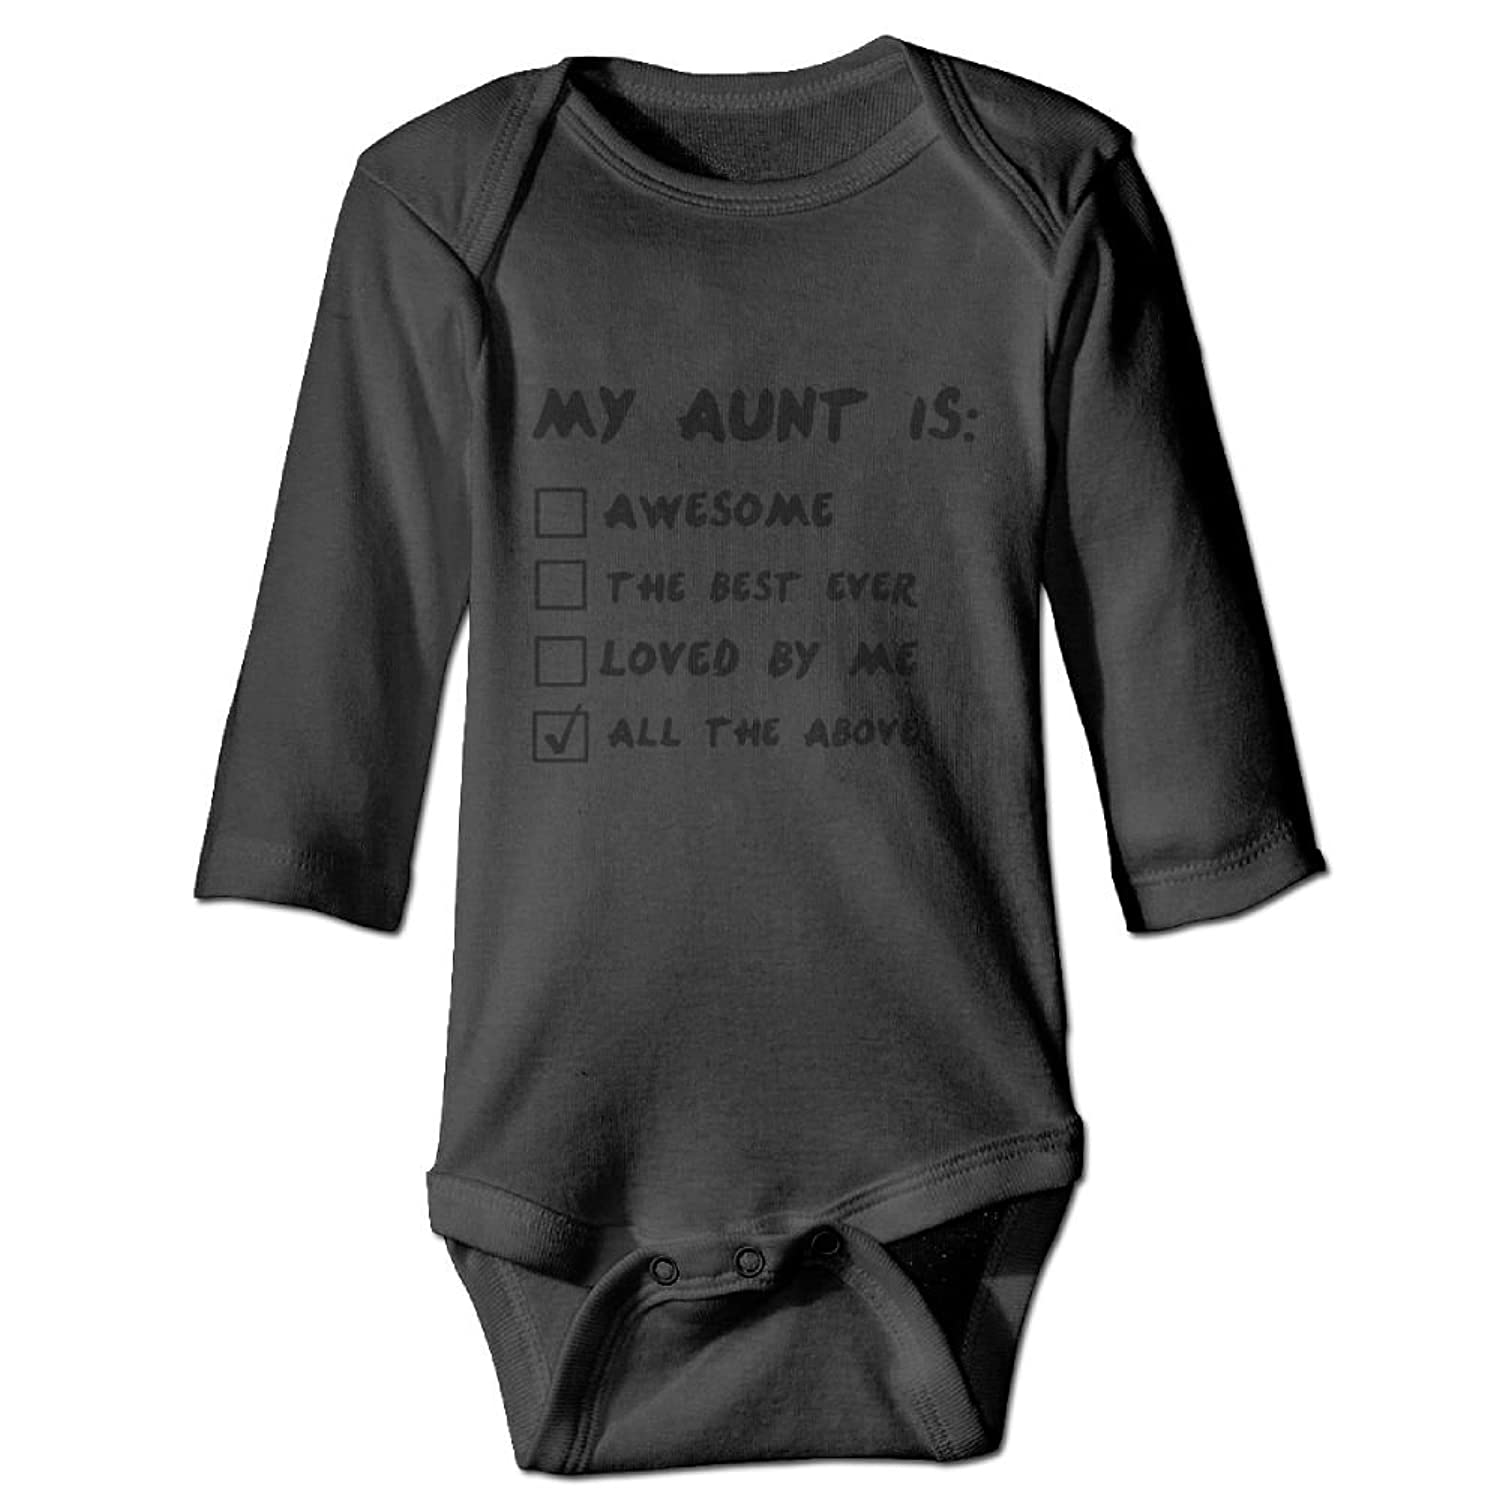 56aef50ab My Aunt Is Awesome Newborn Cotton Jumpsuit Romper Bodysuit Onesies Infant  Boy Girl Clothes